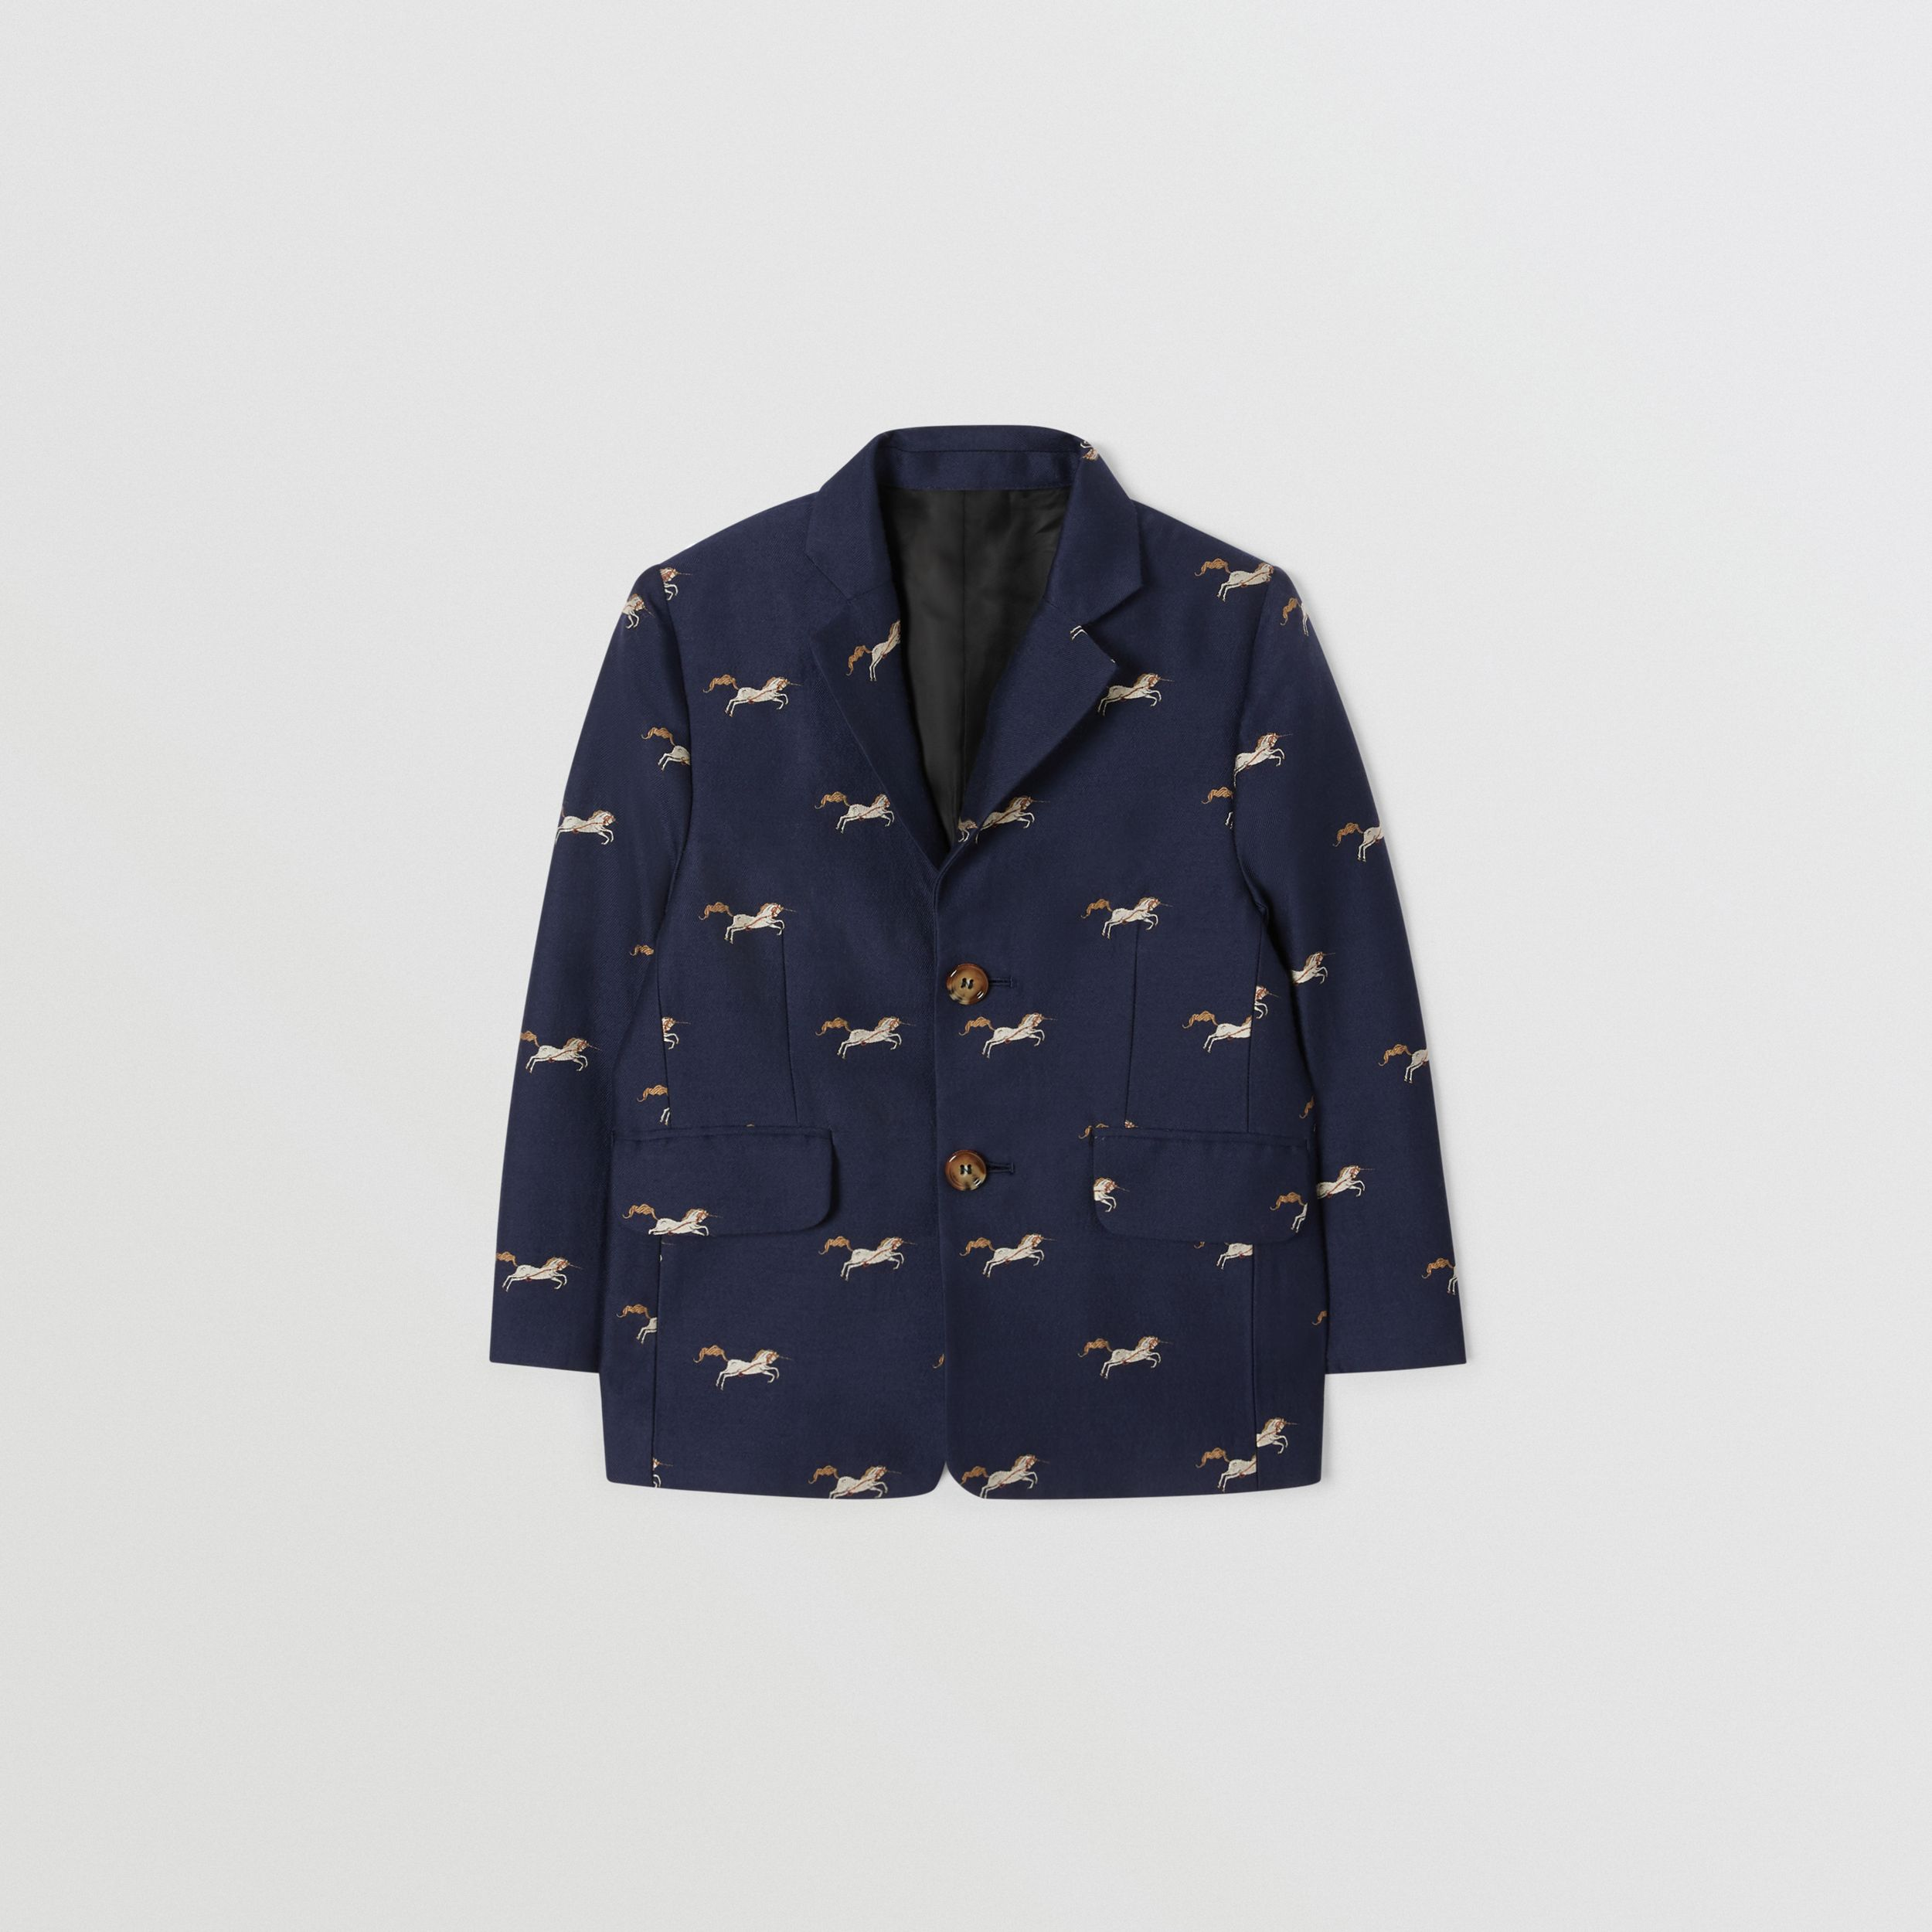 Unicorn Wool Silk Jacquard Blazer in Navy | Burberry - 1